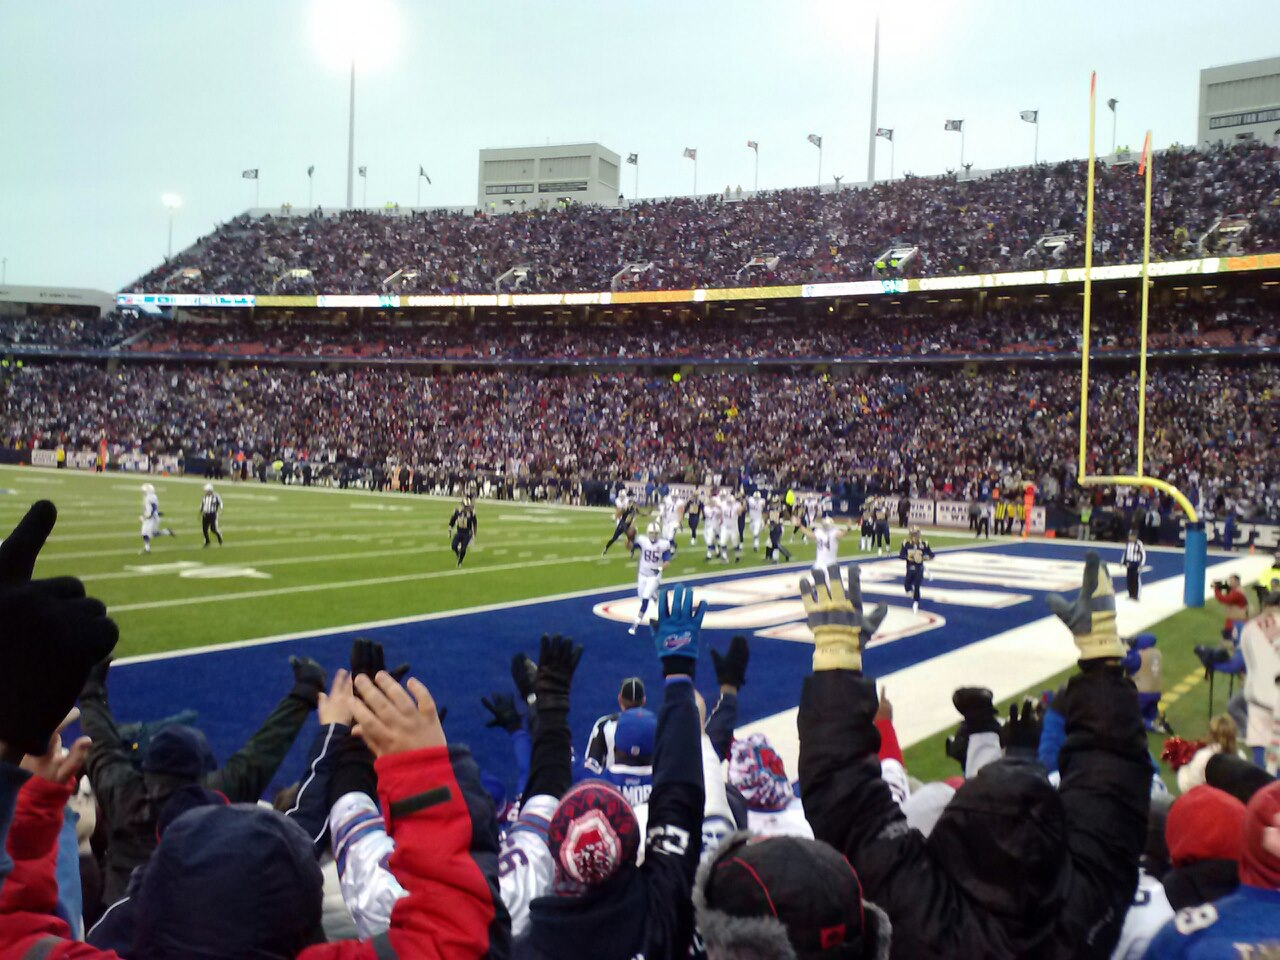 Lee Smith is pictured scoring a touchdown Sunday in the Buffalo Bills 15-12 loss to the St. Louis Rams. (photo by Terry Duffy)